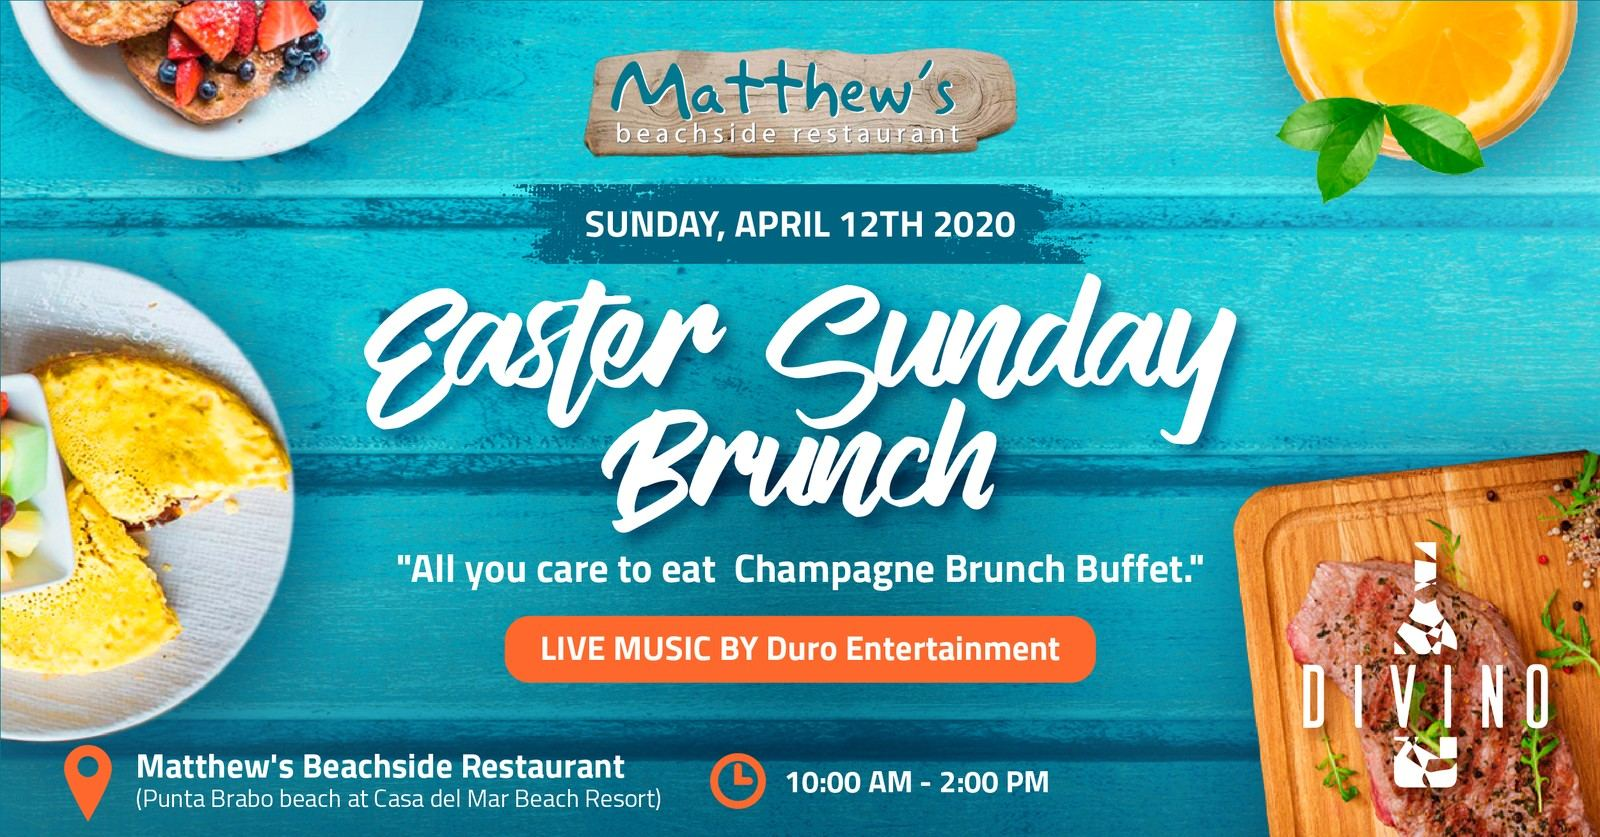 Easter Sunday Brunch at Matthews